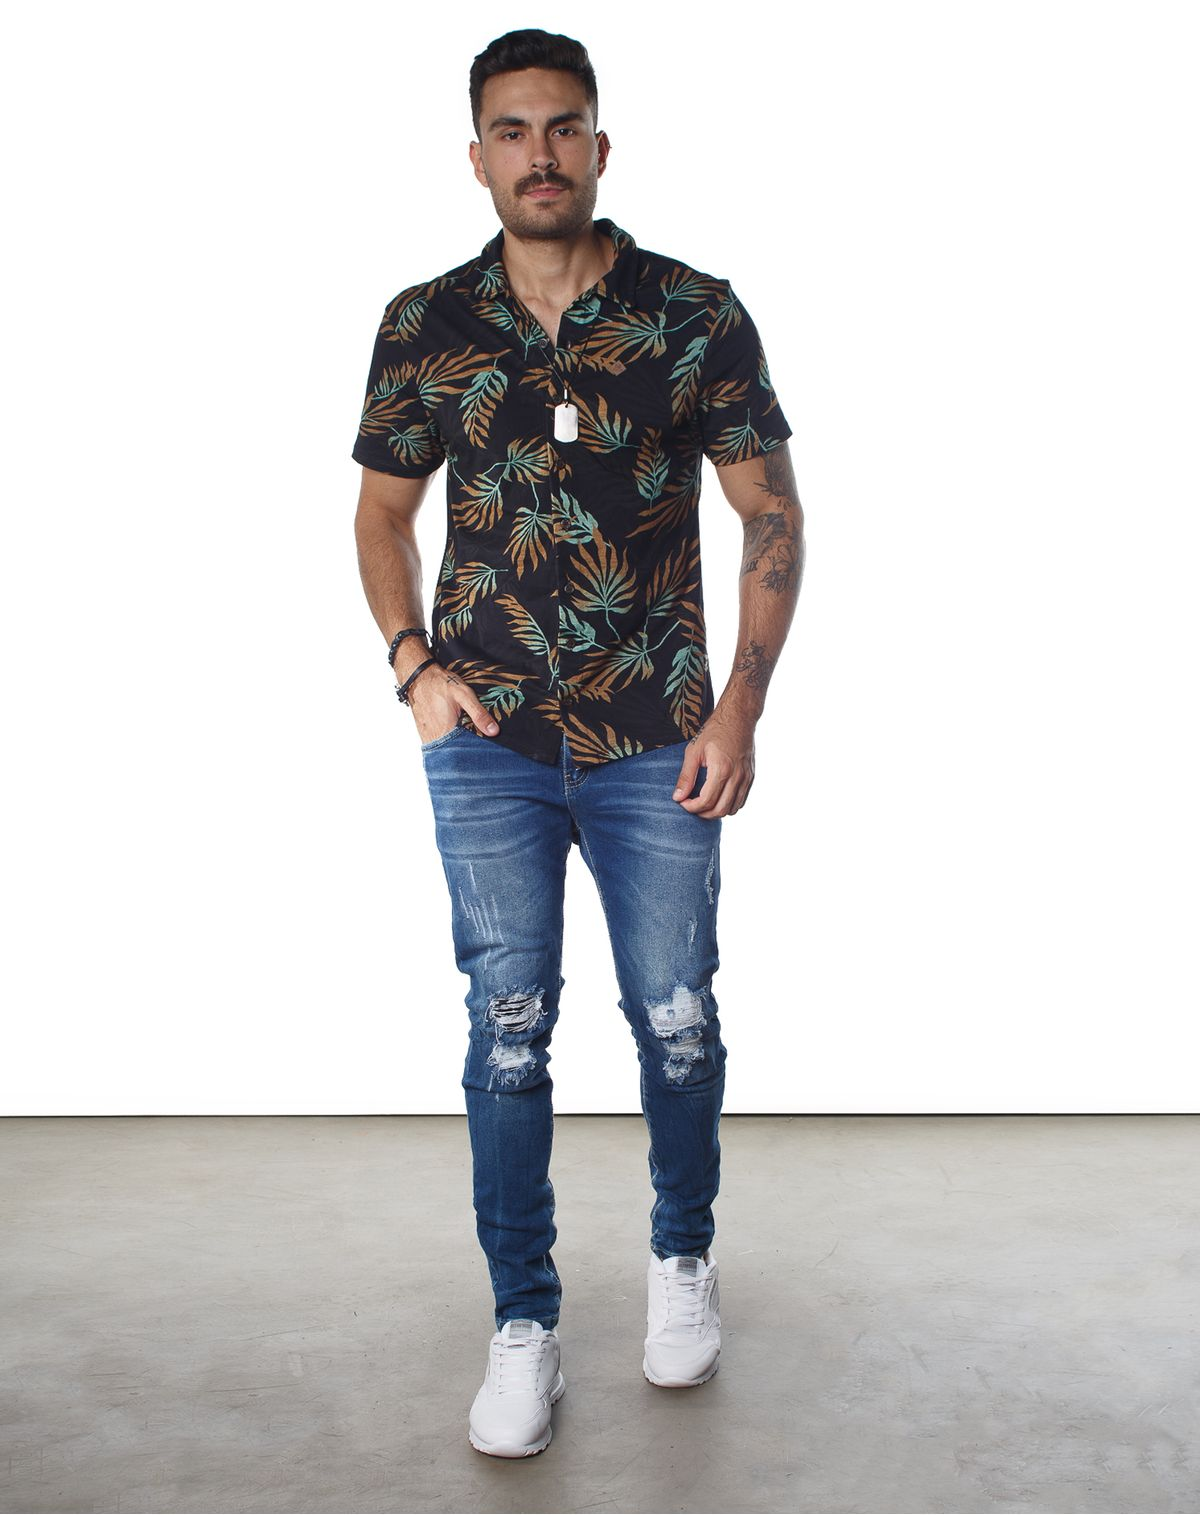 560309003-calca-jeans-skinny-masculina-cropped-destroyed-jeans-40-8c9